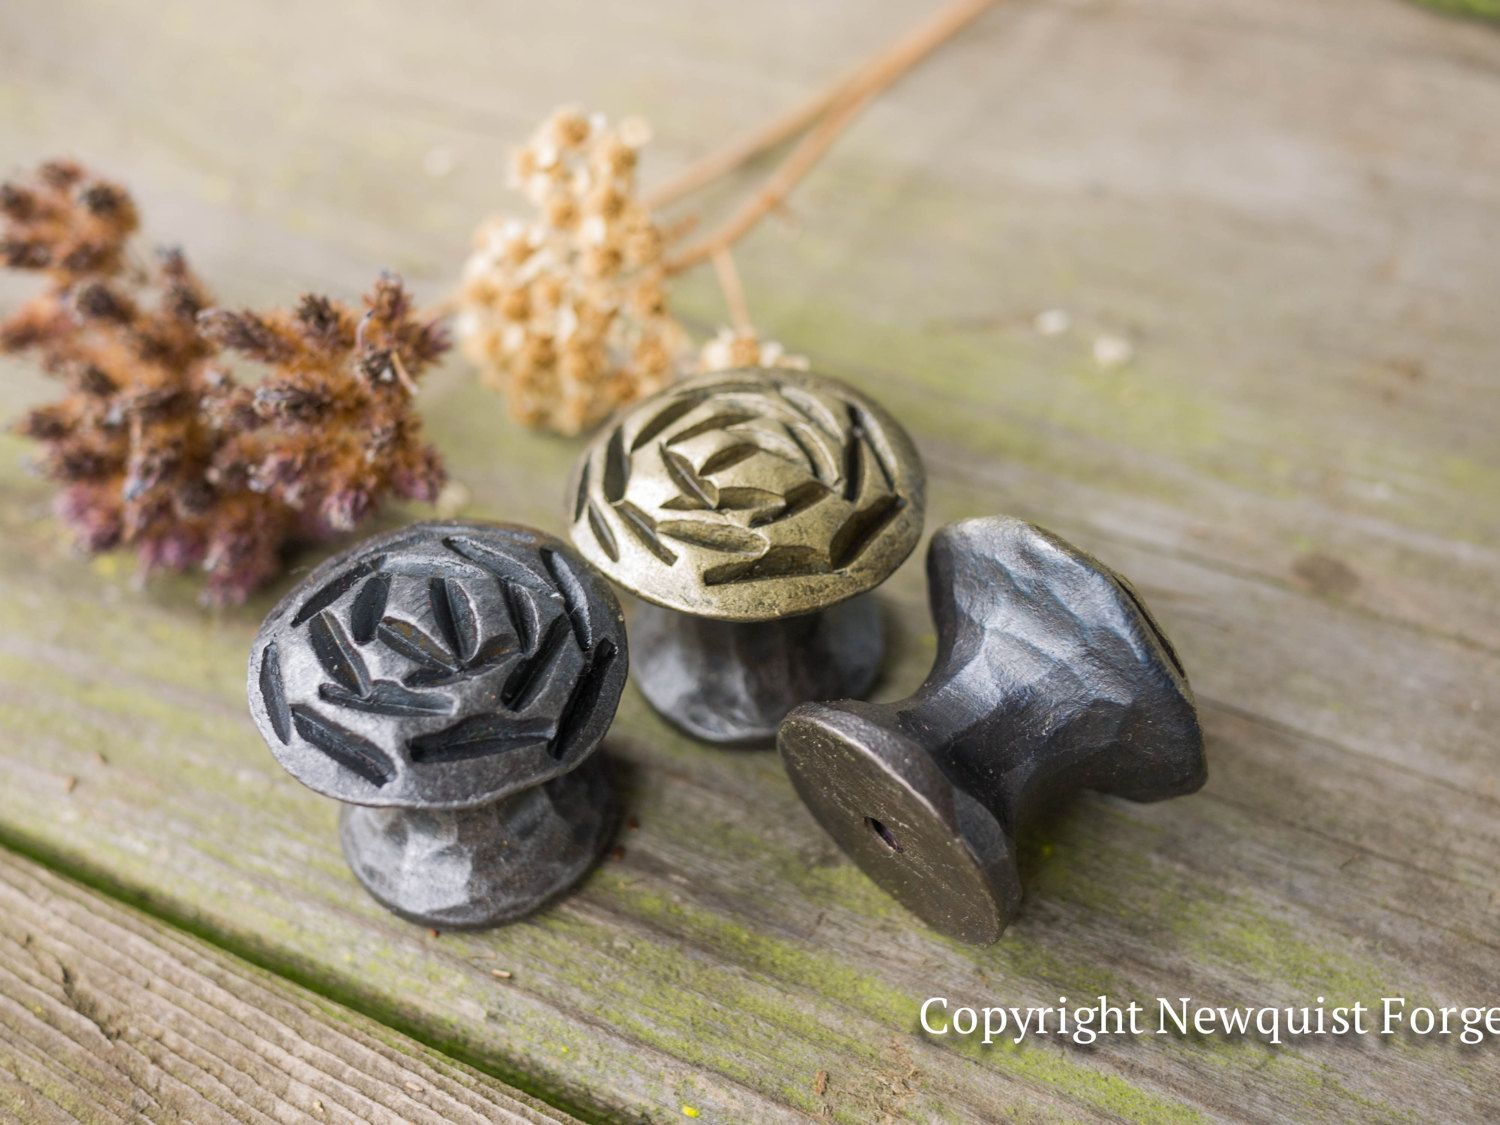 Charmant Housewarming Rose Iron Drawer Knobs, Rustic Cabinet Hardware Cabinet Knobs, Kitchen Hardware, Metal Knobs N Pulls, Wrought Iron Pulls